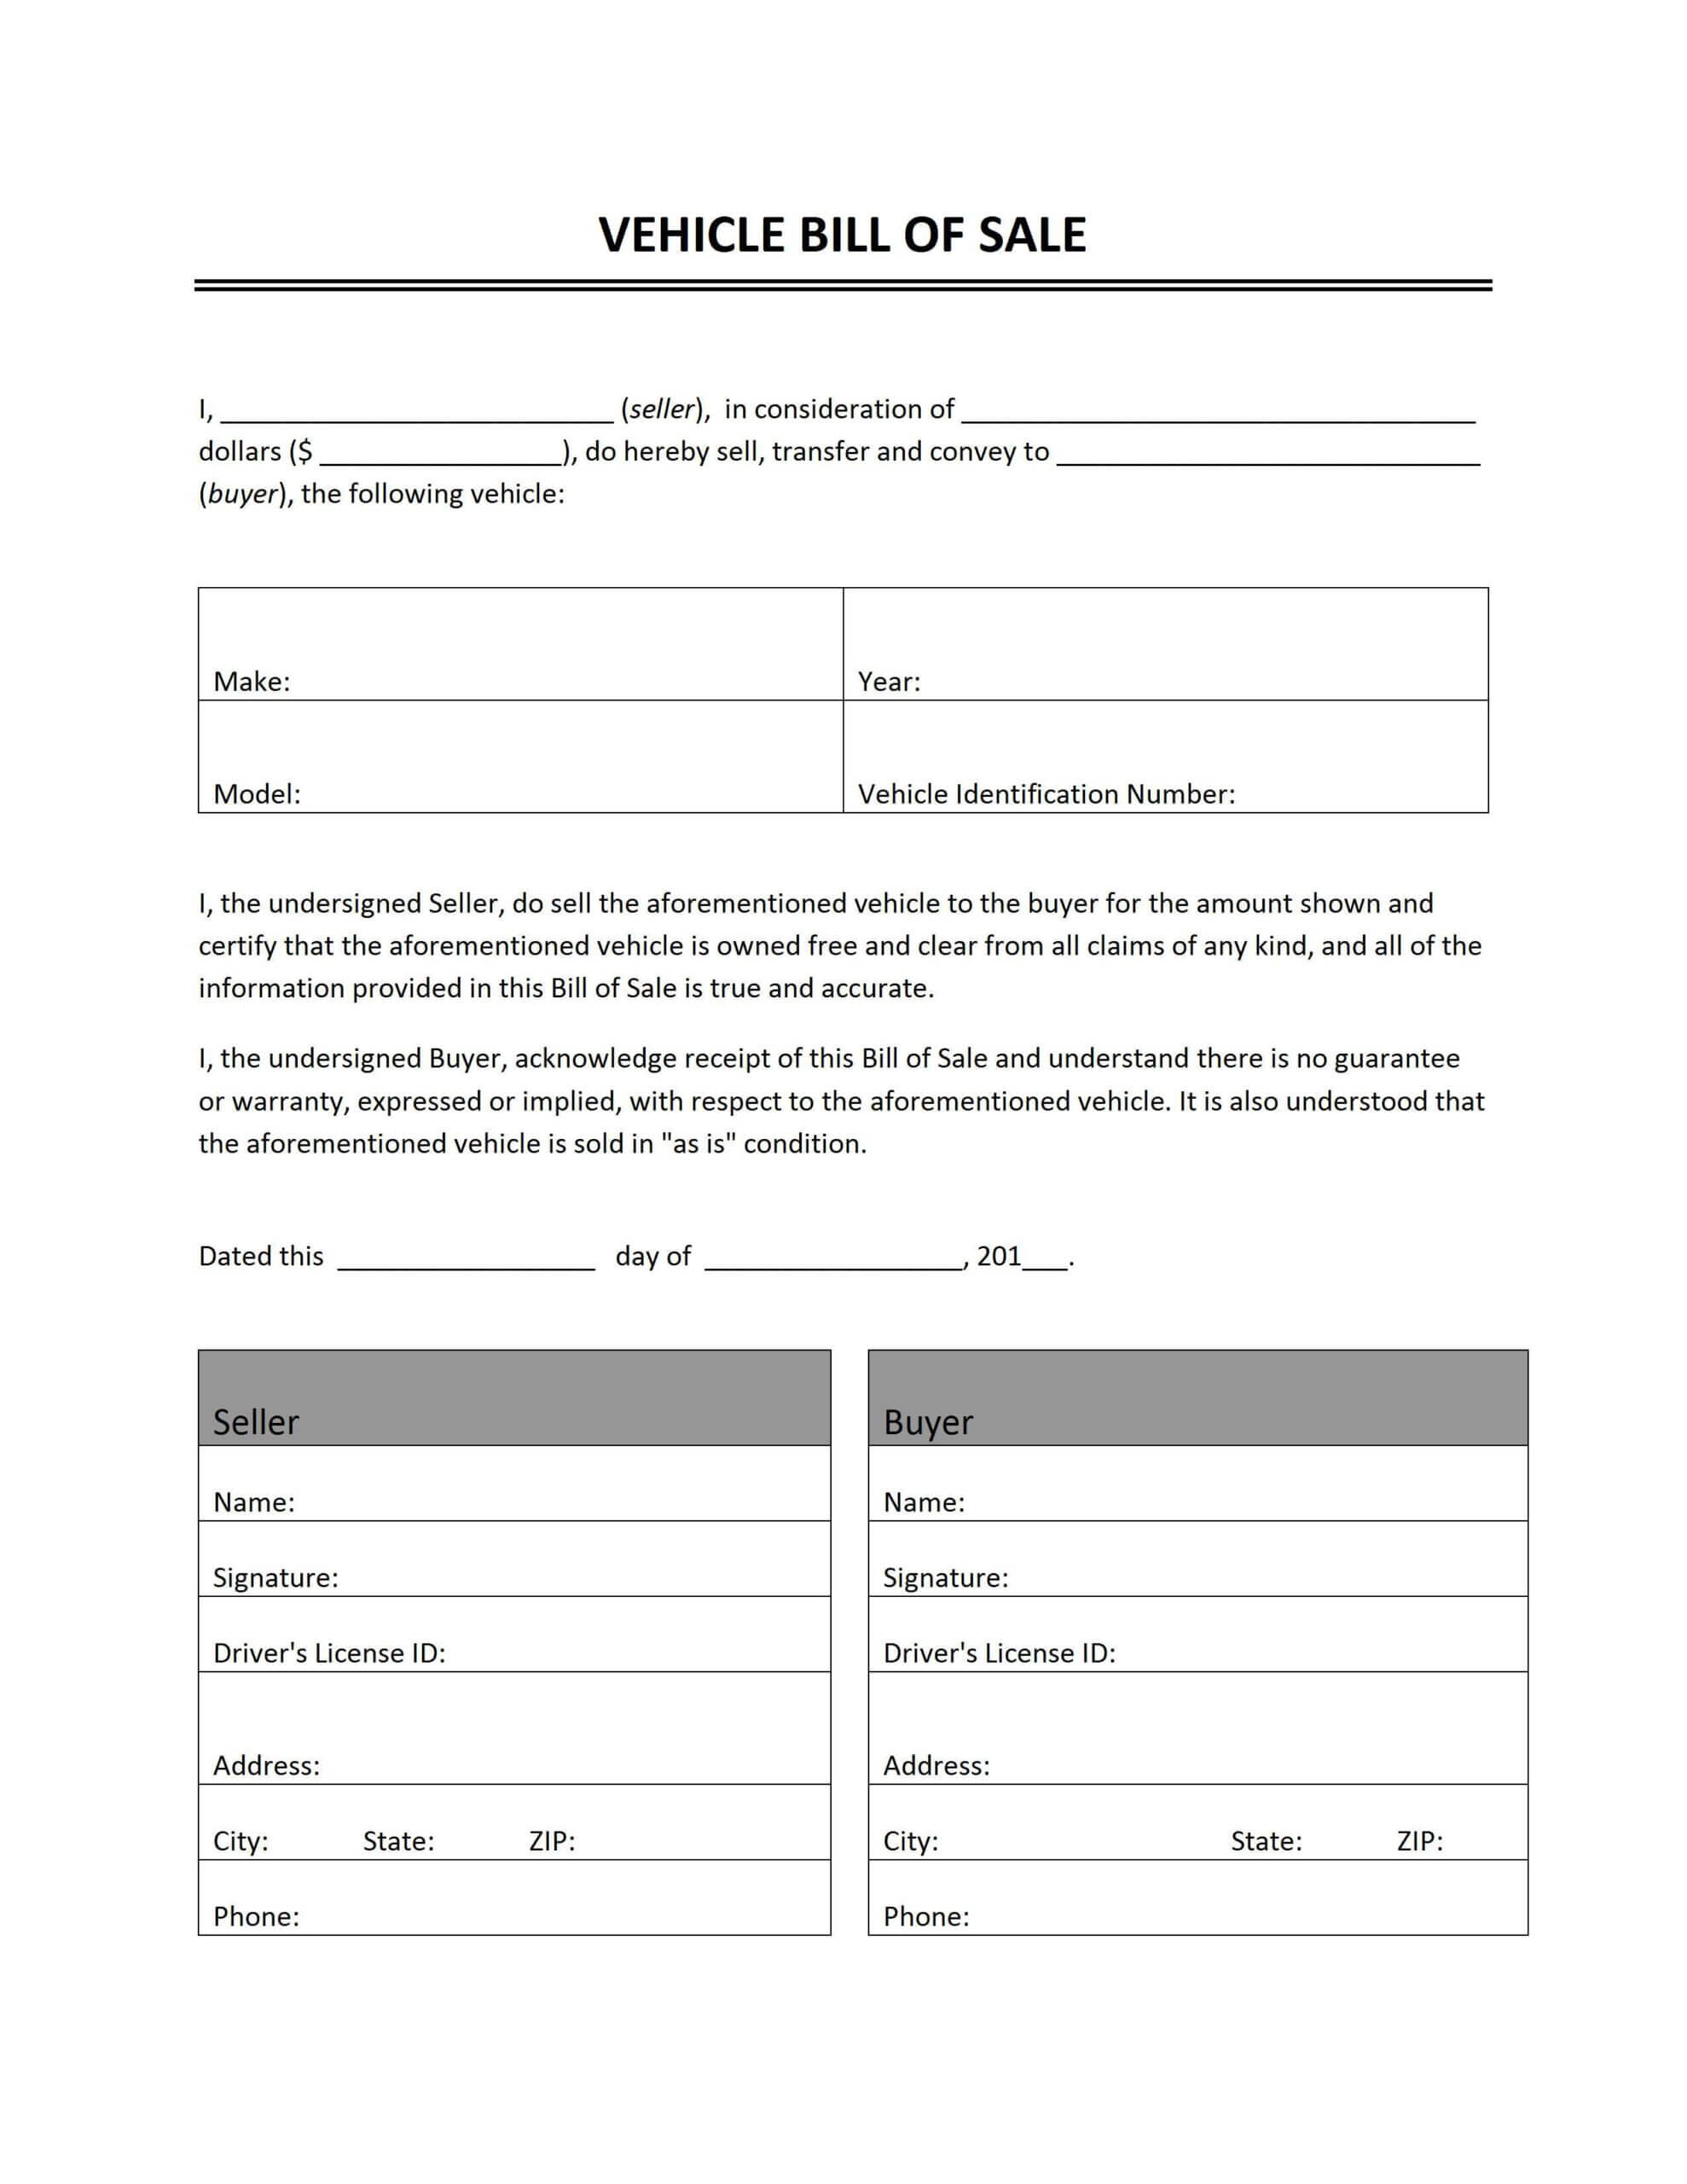 006 Bill Of Sale Word Template Uk Awesome Ideas Car ~ Thealmanac Throughout Car Bill Of Sale Word Template